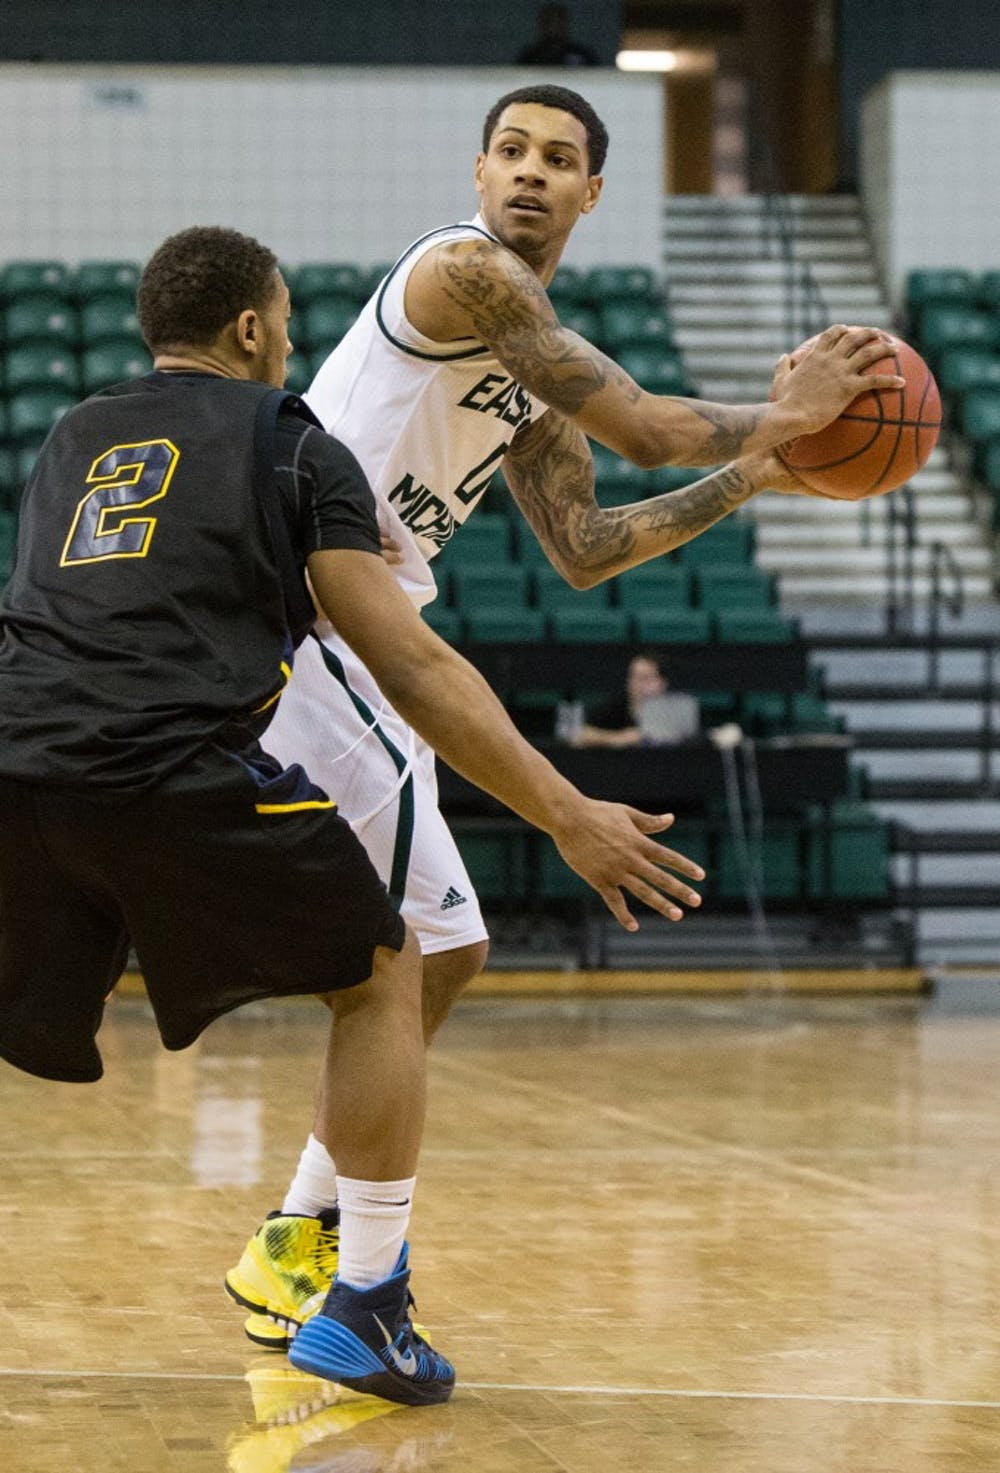 Lee scores 24 in EMU's 73-62 win over Ball State